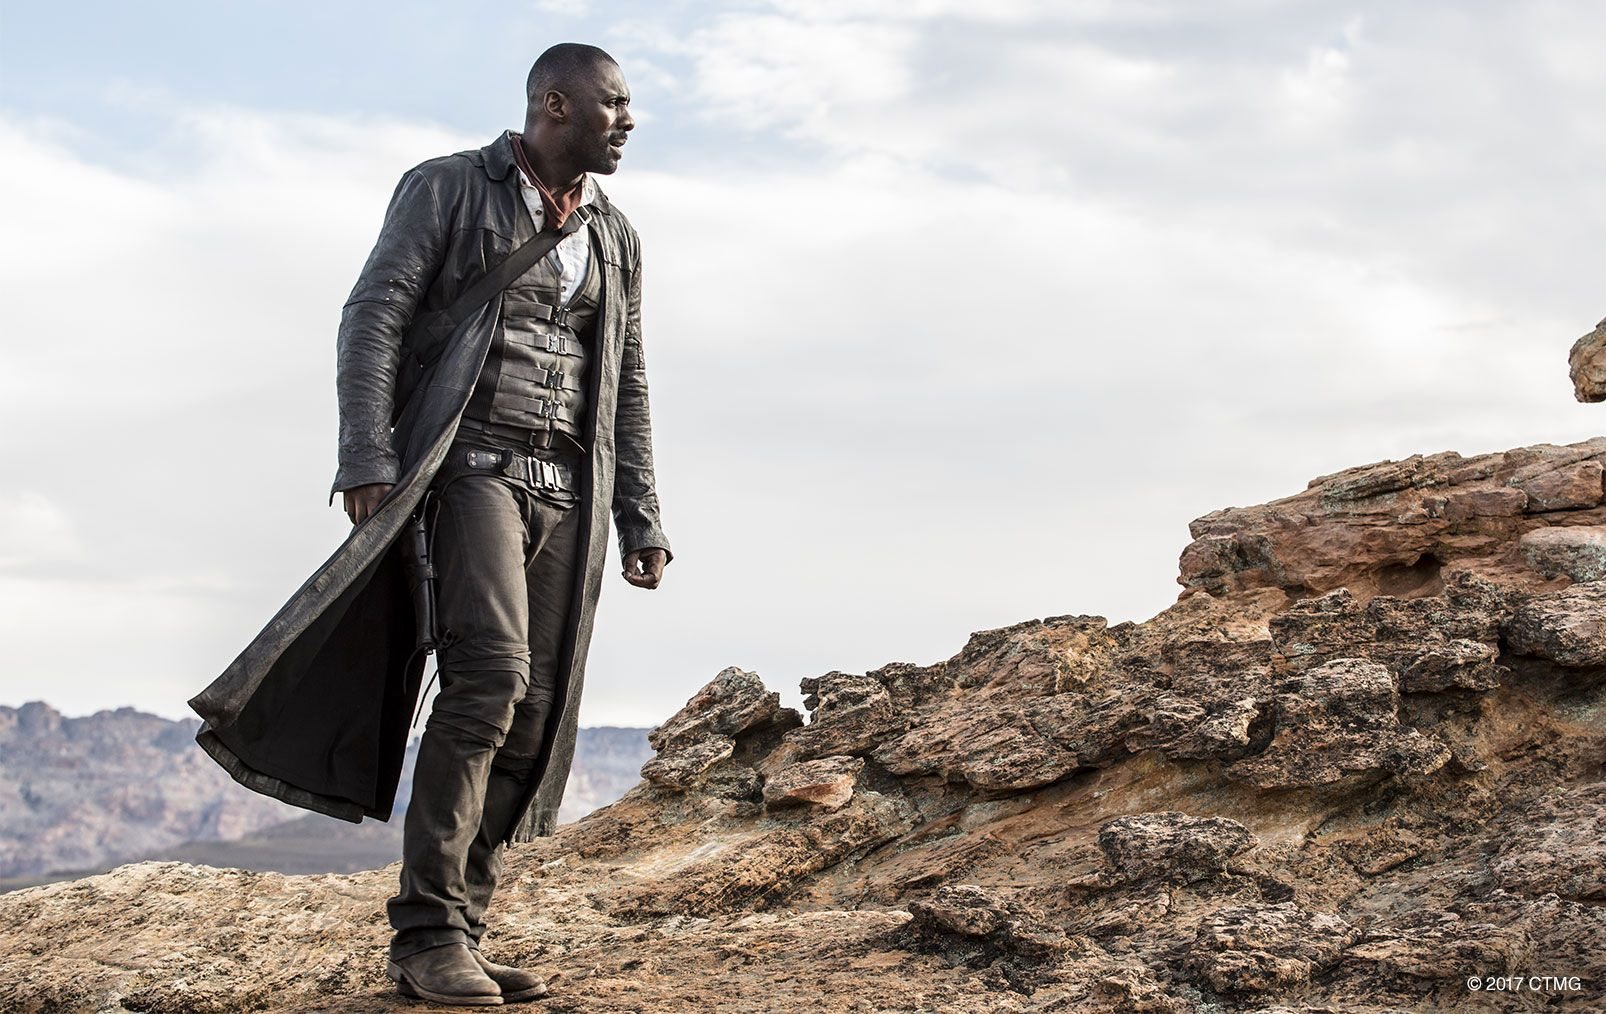 Stephen King's The Dark Tower, the ambitious story from